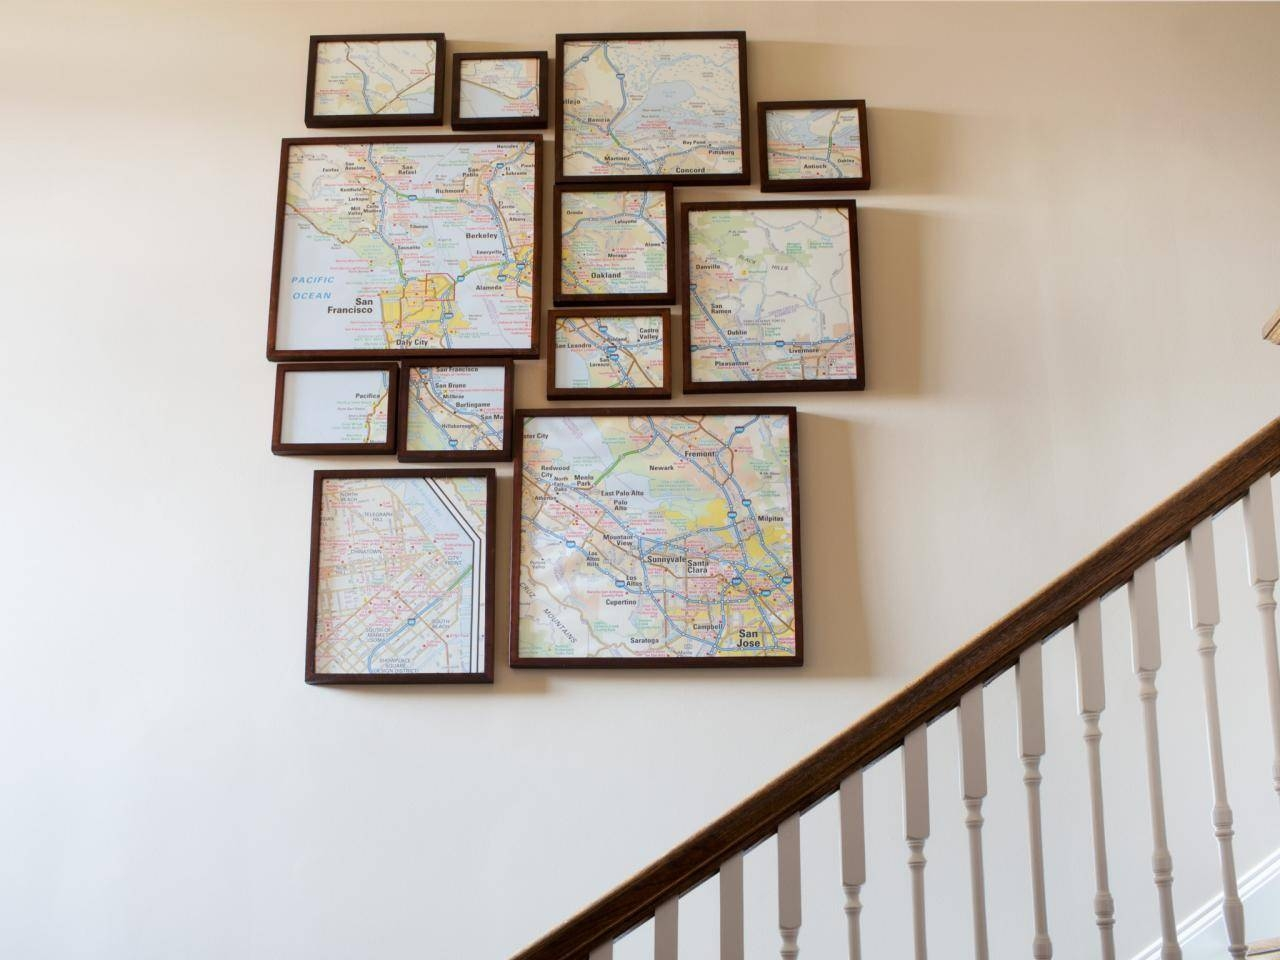 How To Create Fractured, Framed Map Art | Hgtv Within Newest Map Wall Artwork (Gallery 9 of 20)